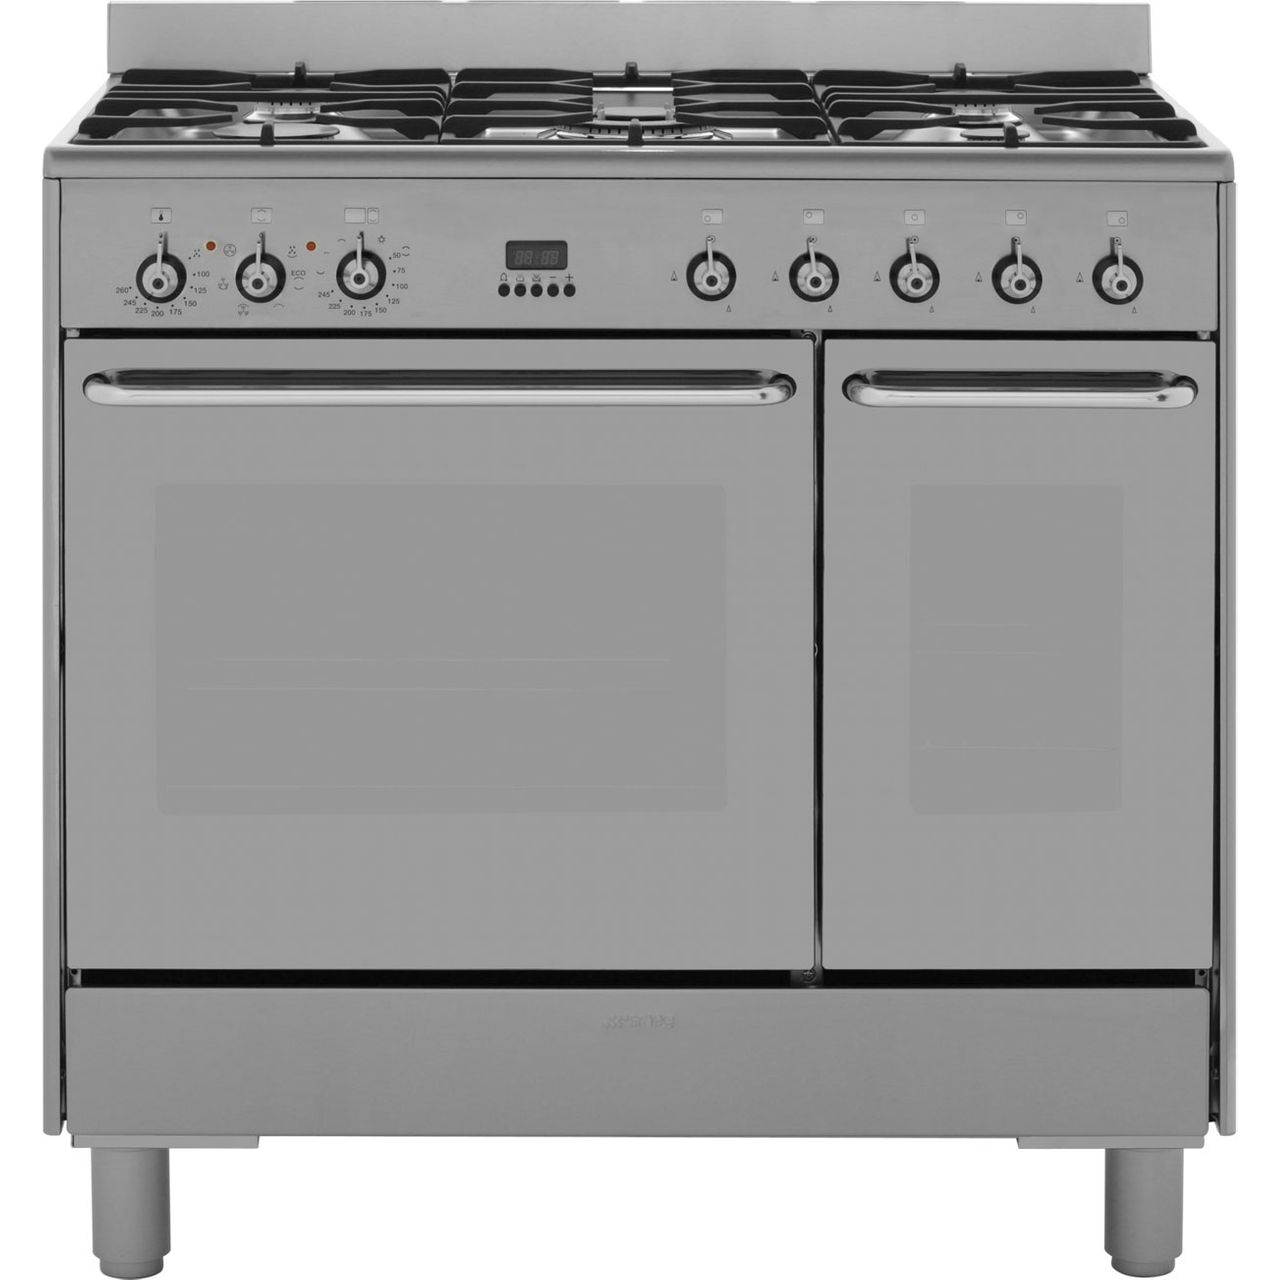 Smeg c92dx8 dual fuel range cooker stainless steel